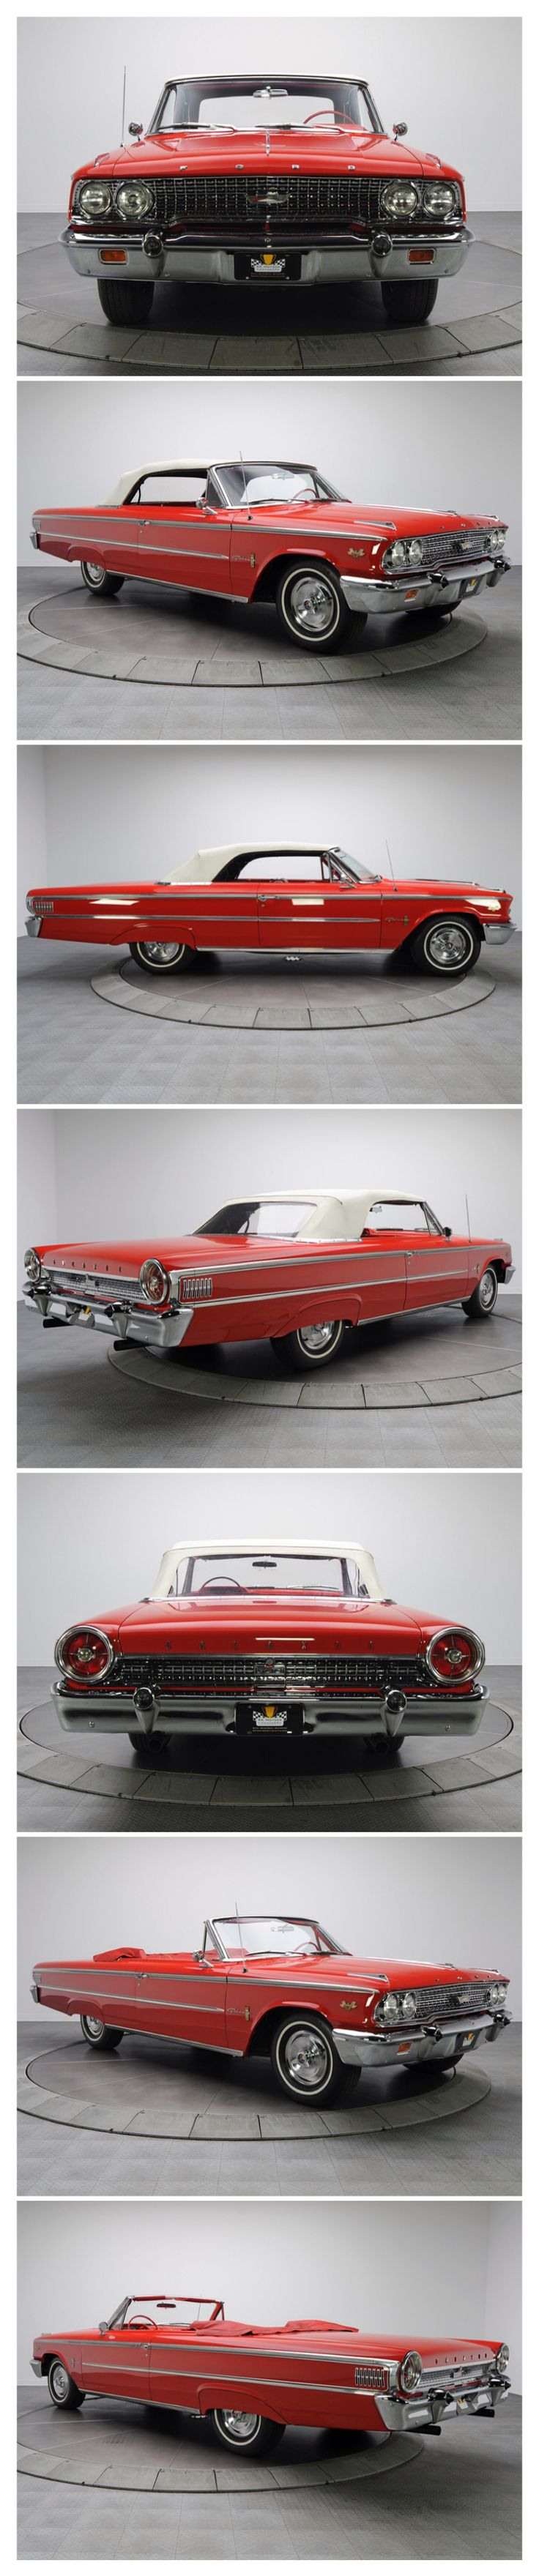 1963 Ford Galaxie 500 Convertible. I had one of these when I was 18.  It was red too.  I loved it.